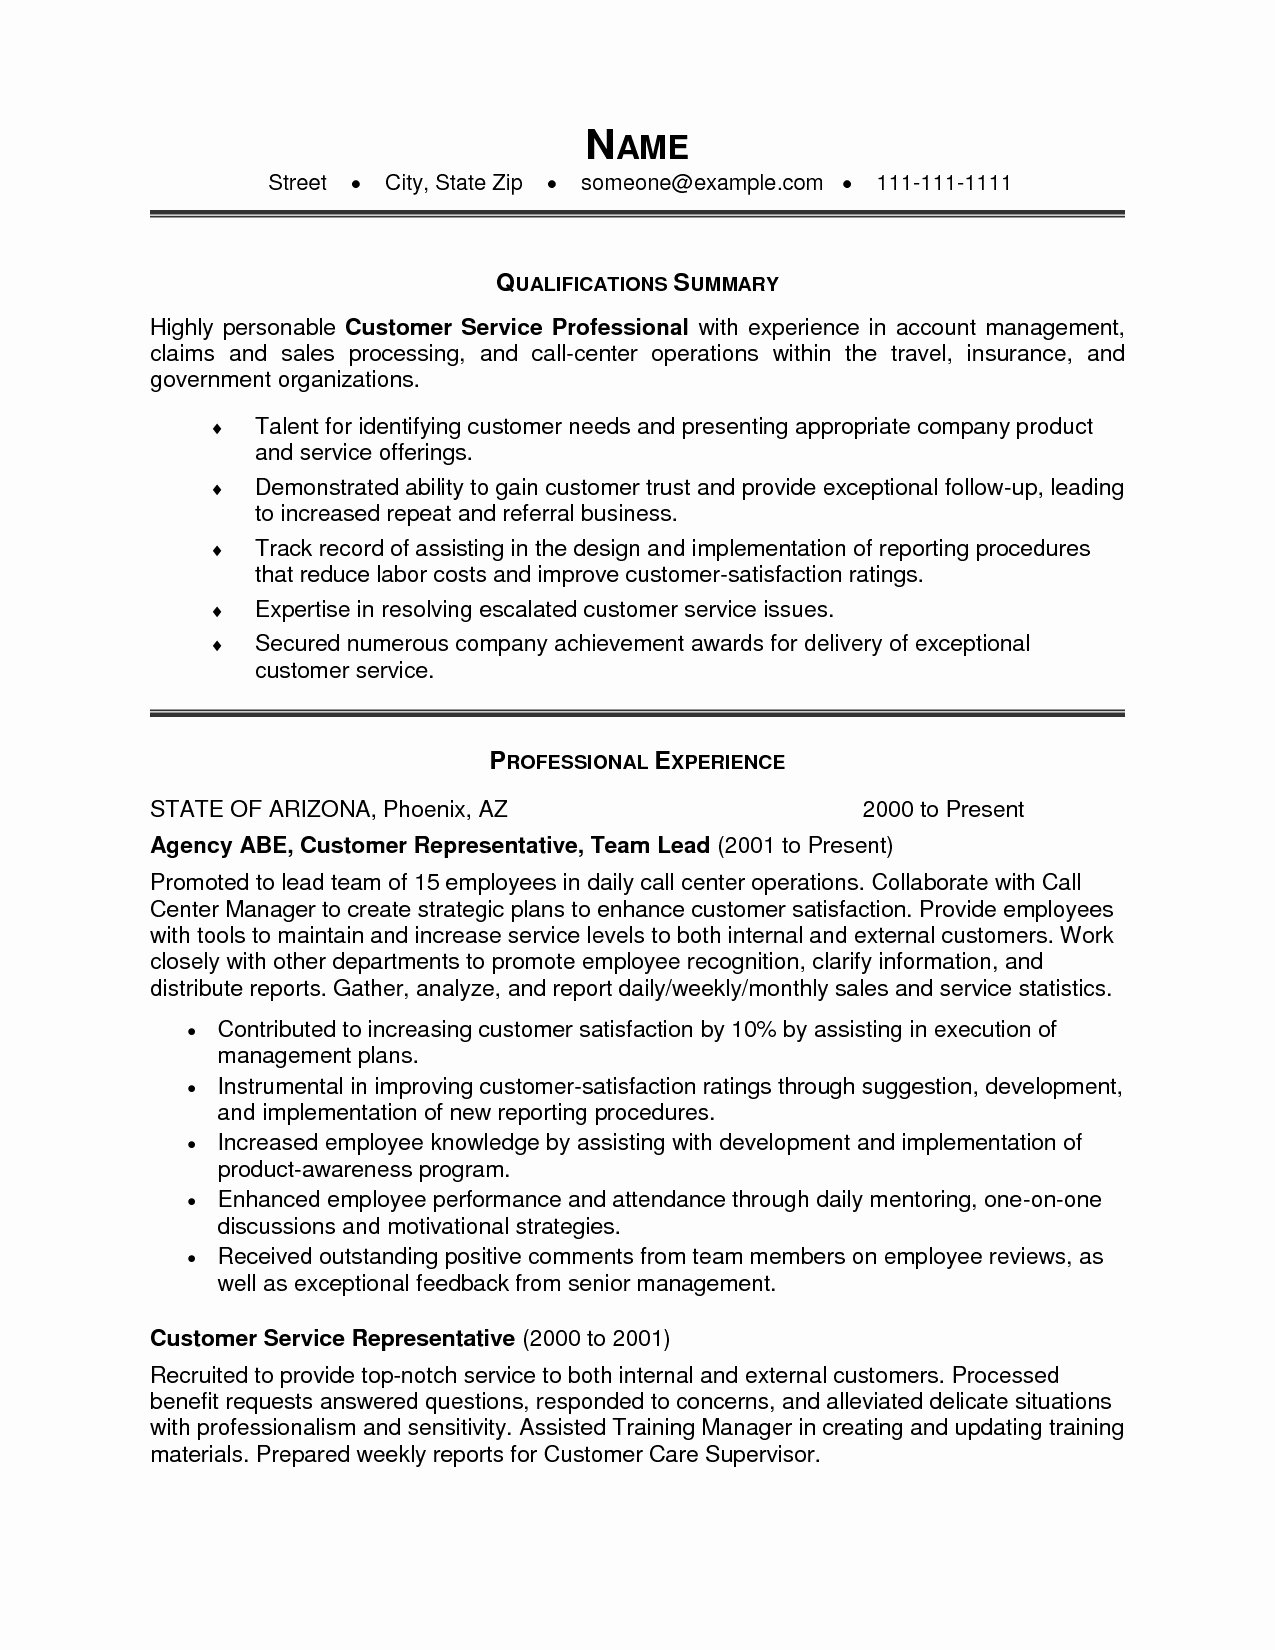 Csr Resume Objective Customer Service Representative